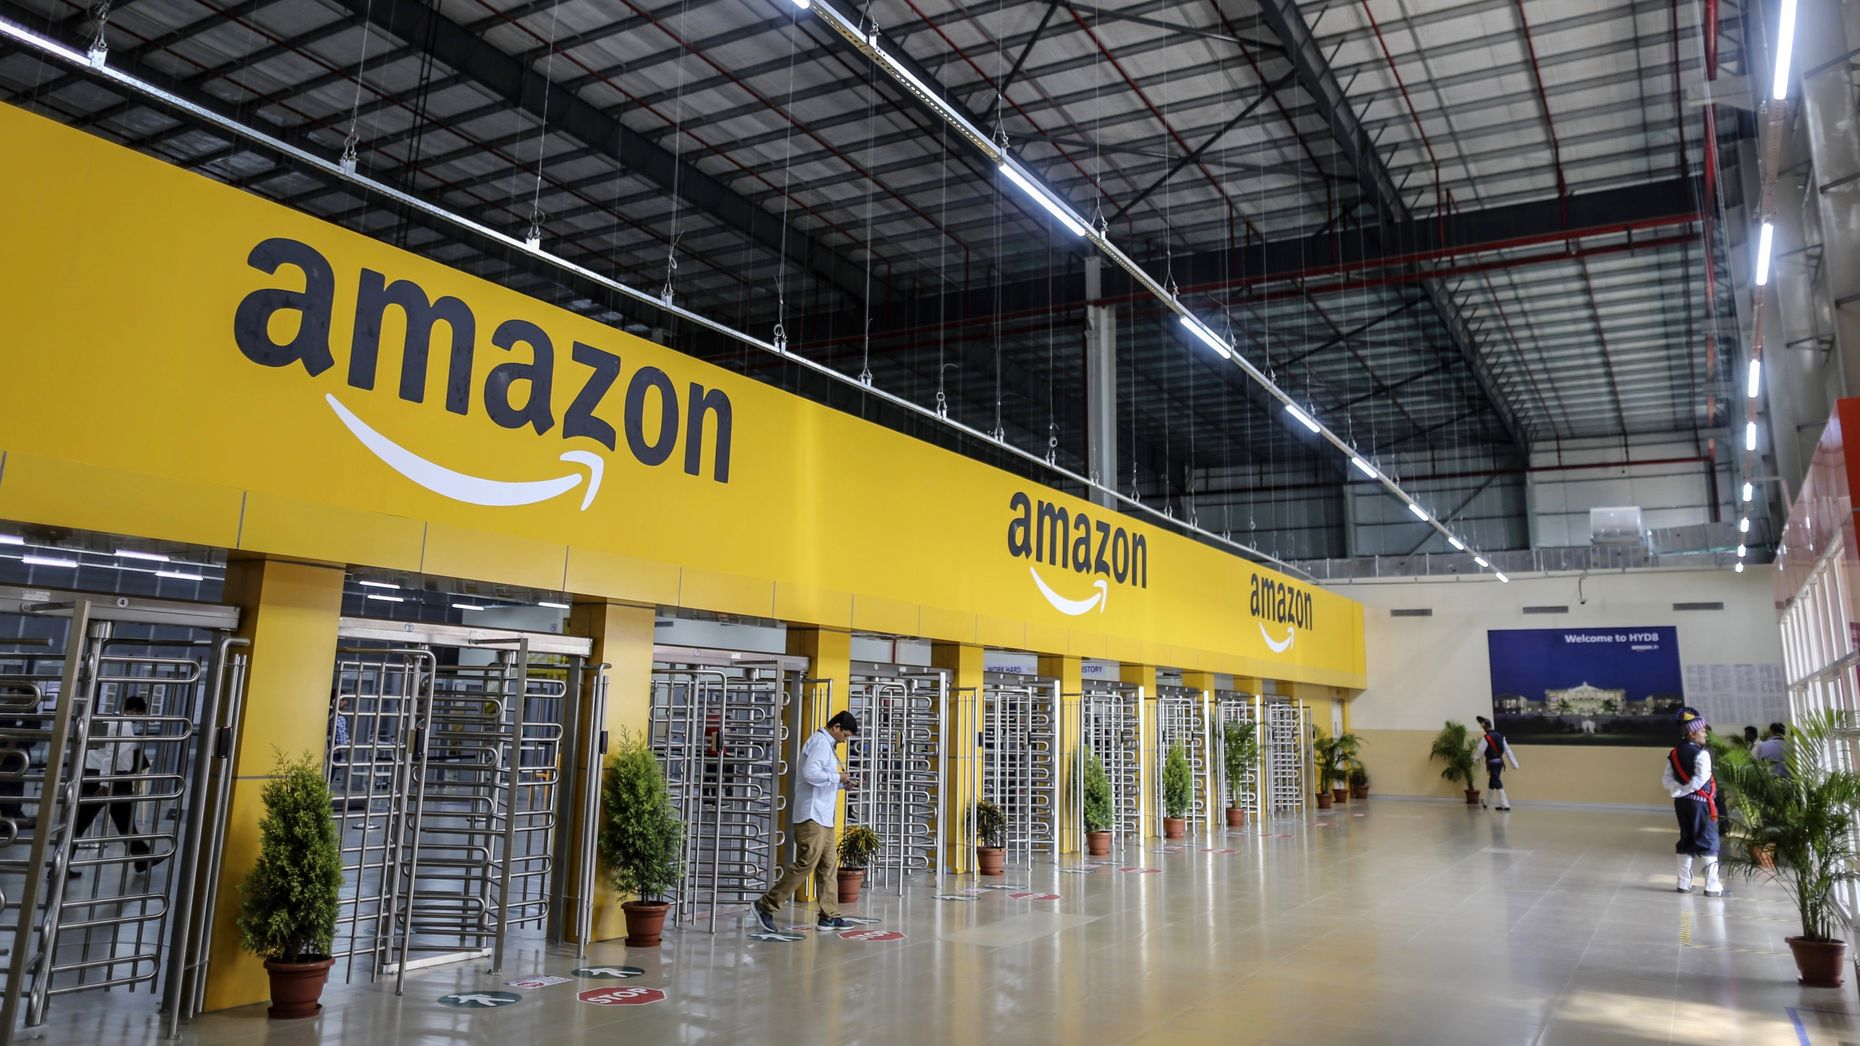 An Amazon warehouse in Hyderabad, India. Photo by Bloomberg.